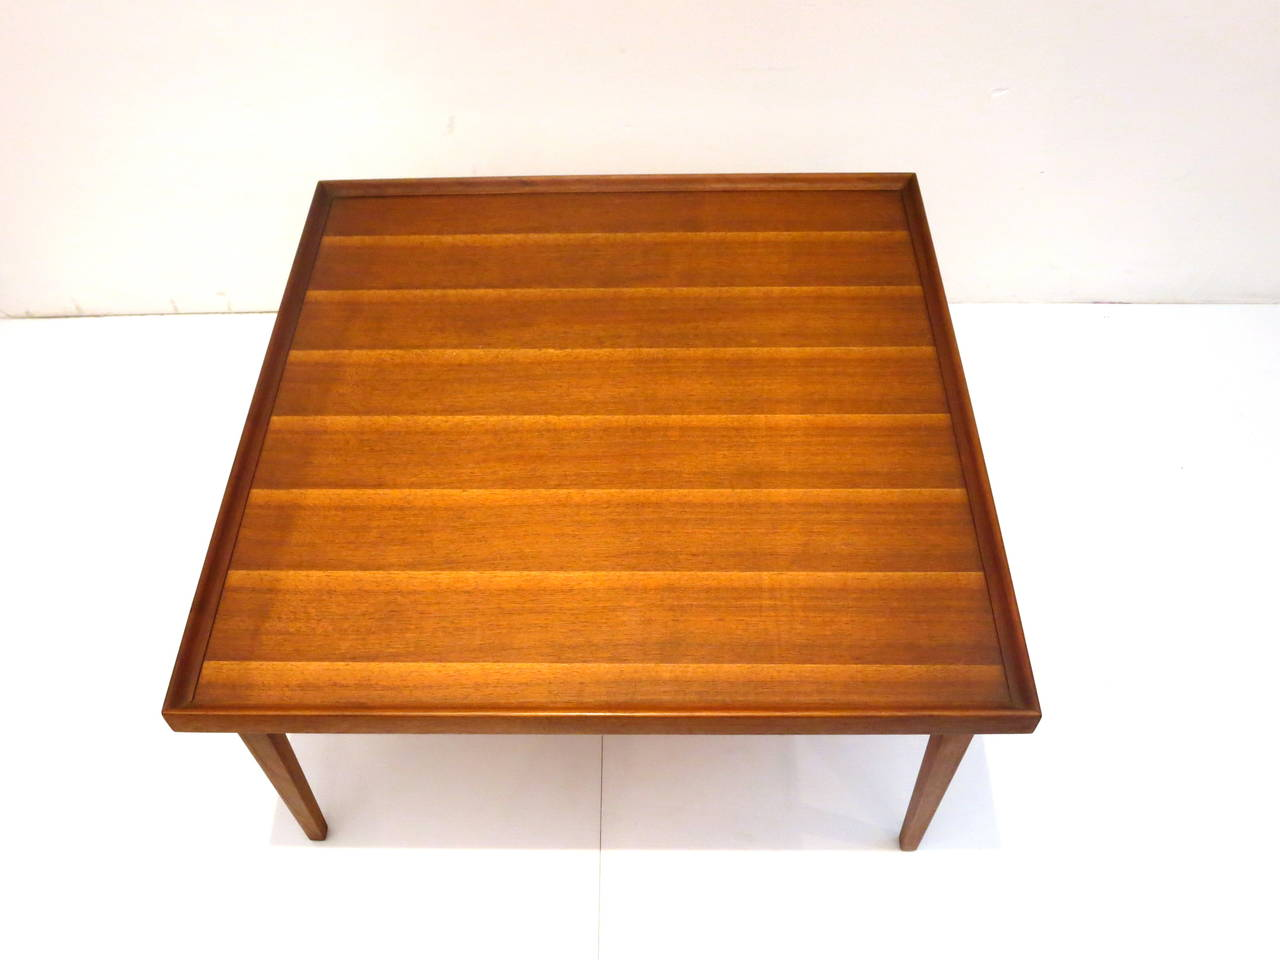 1950s American Modern Walnut Square Coffee Table With Black Trim At 1stdibs